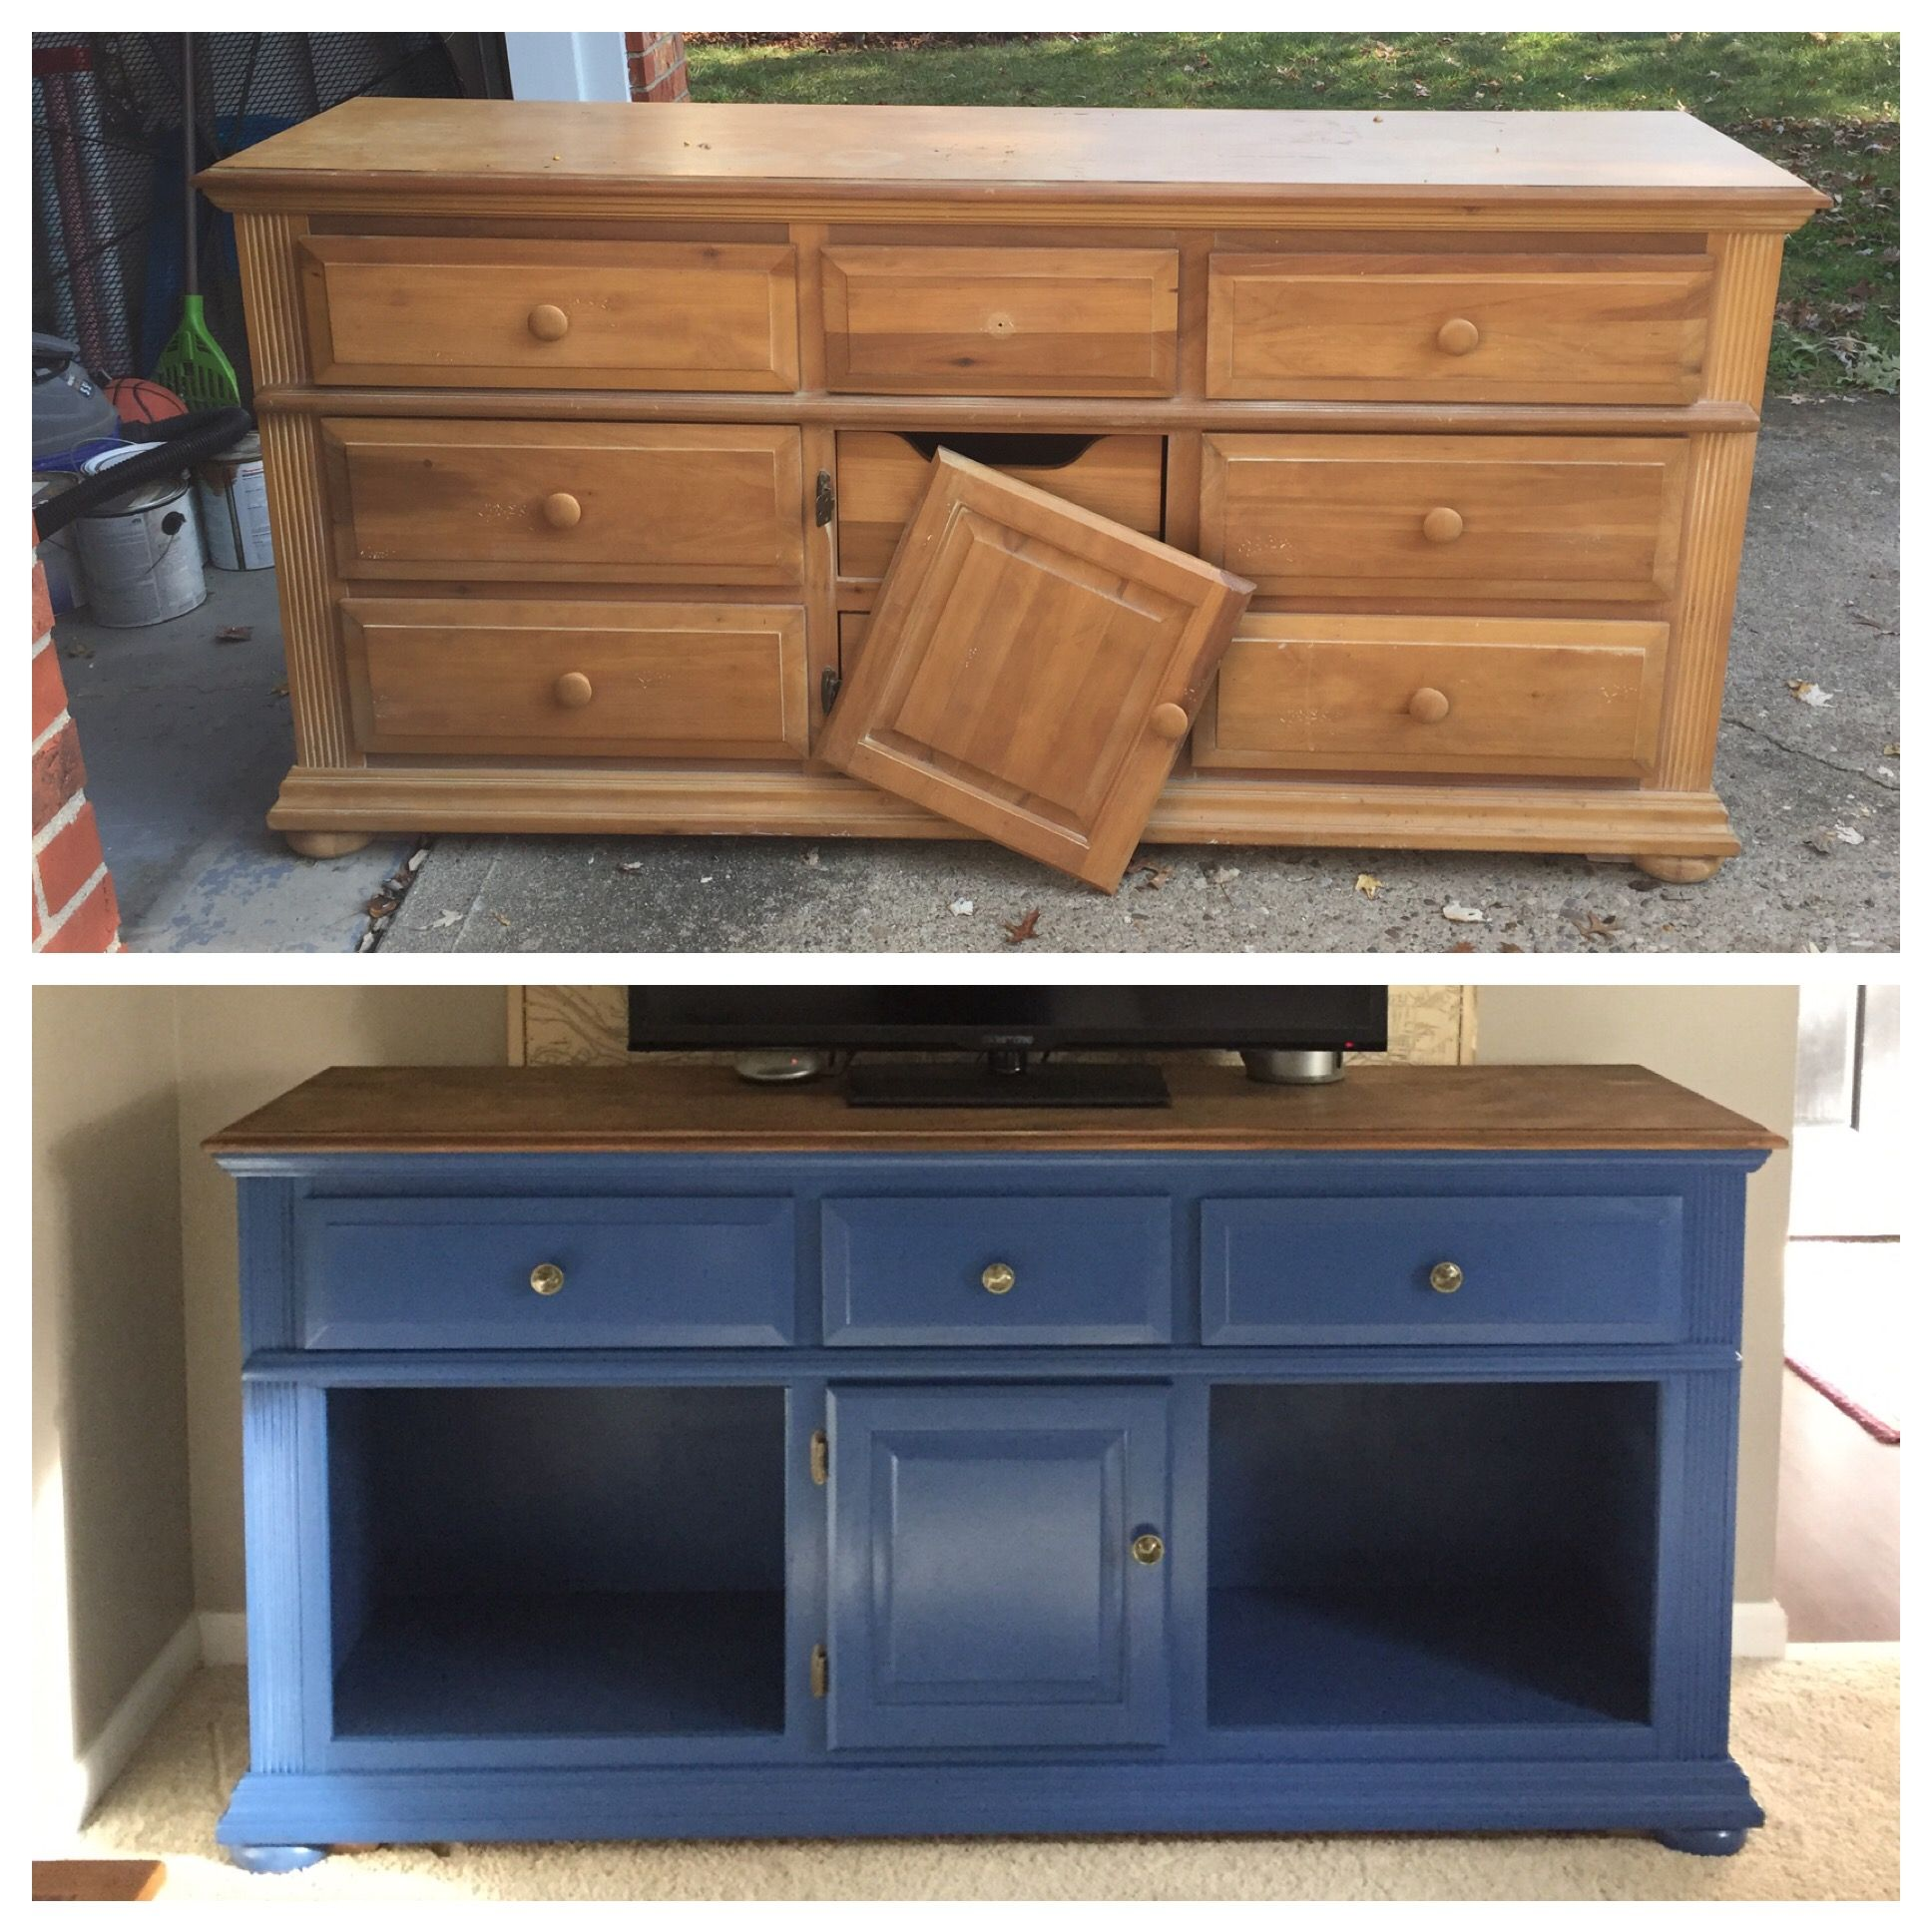 Tv Cabinet Made Into Play Kitchen: Dresser Transformation